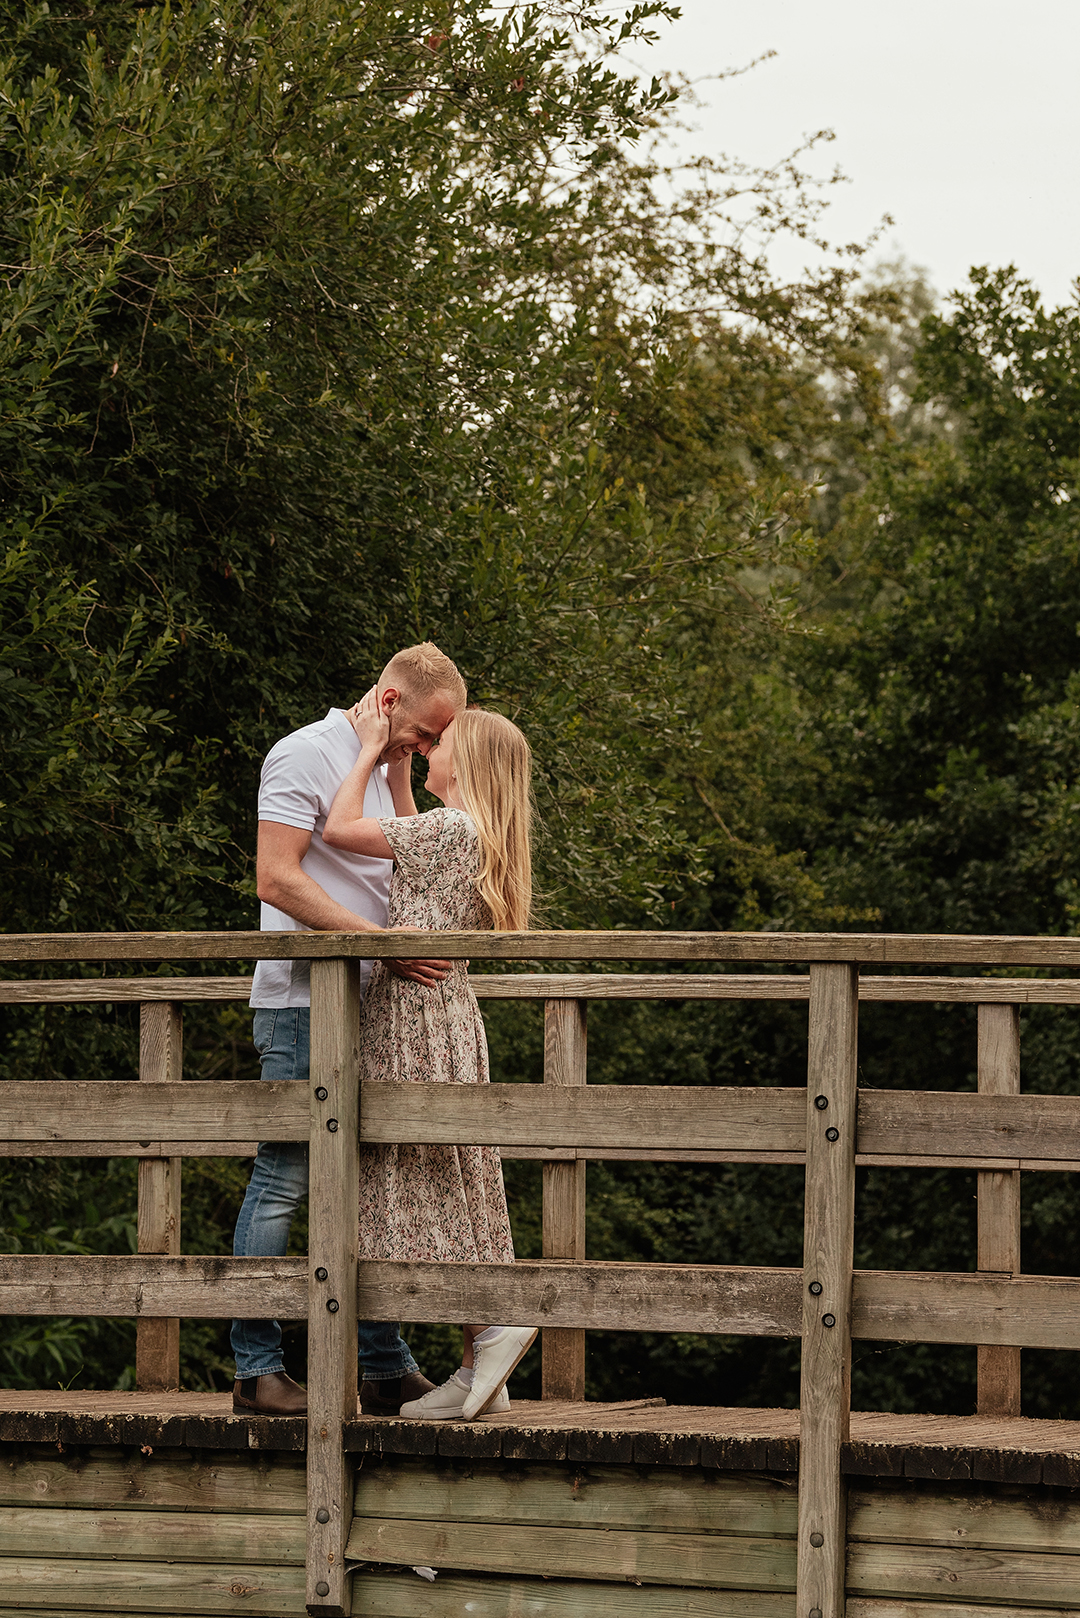 Full length image of Bride pulls groom in for intimate moment on bridge in Natural Pre Wedding Photoshoot at Stanborough Lake